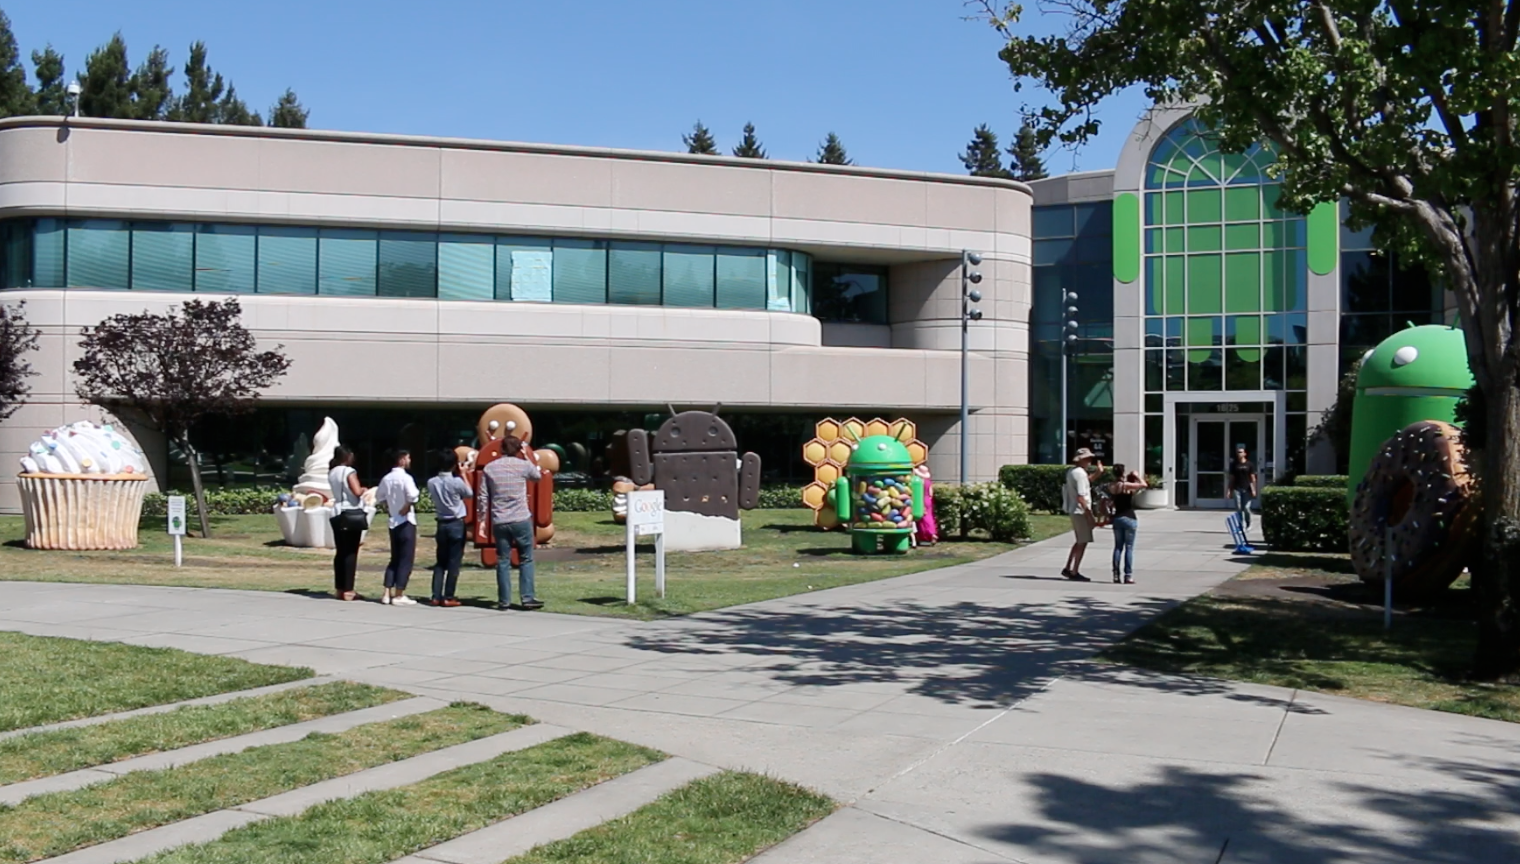 The Googleplex